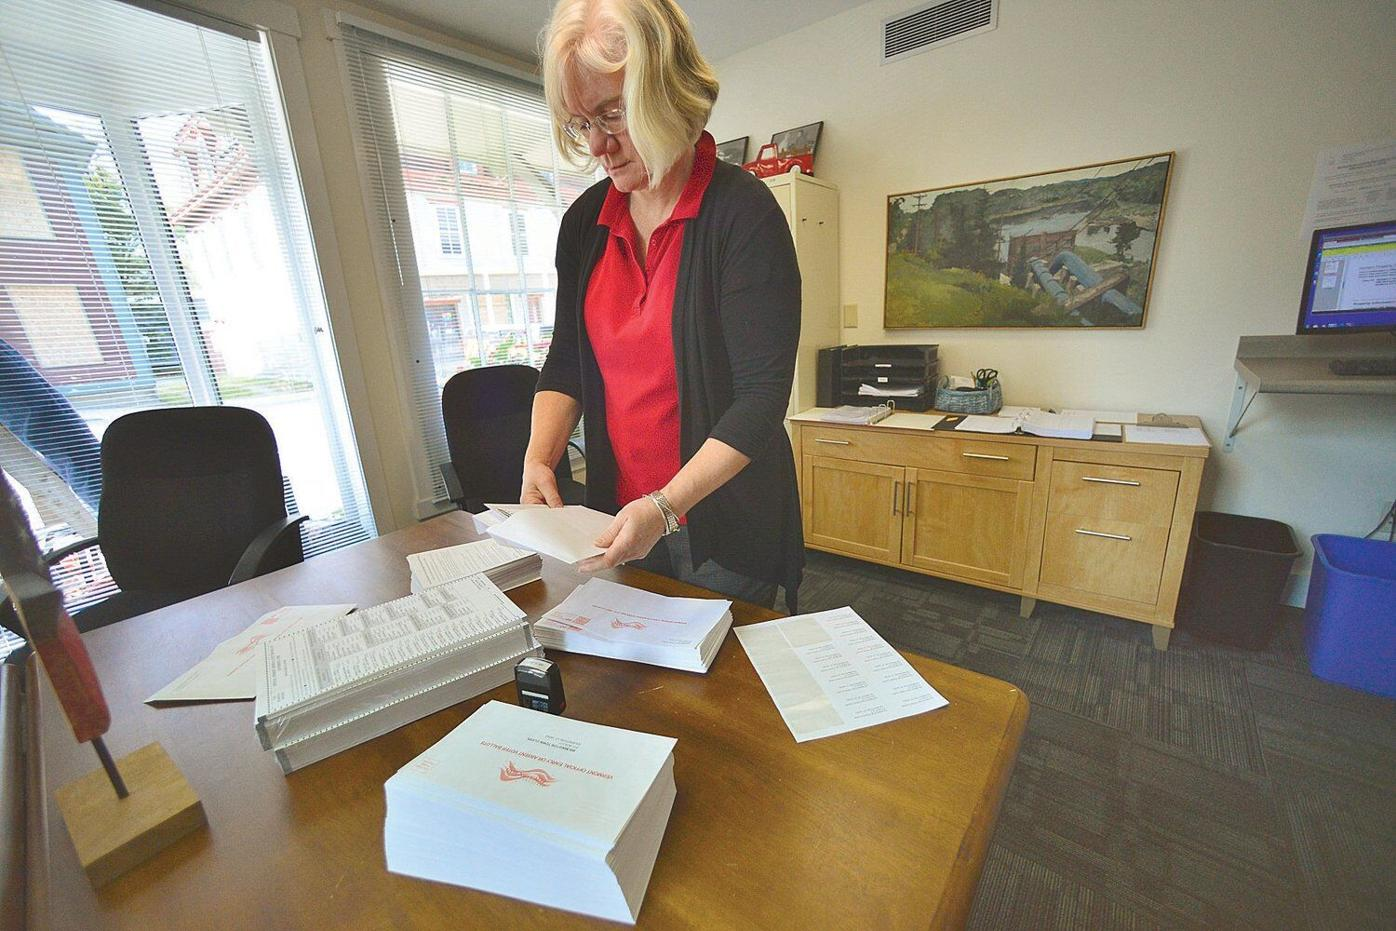 Ballots coming soon to vote by mail in general election